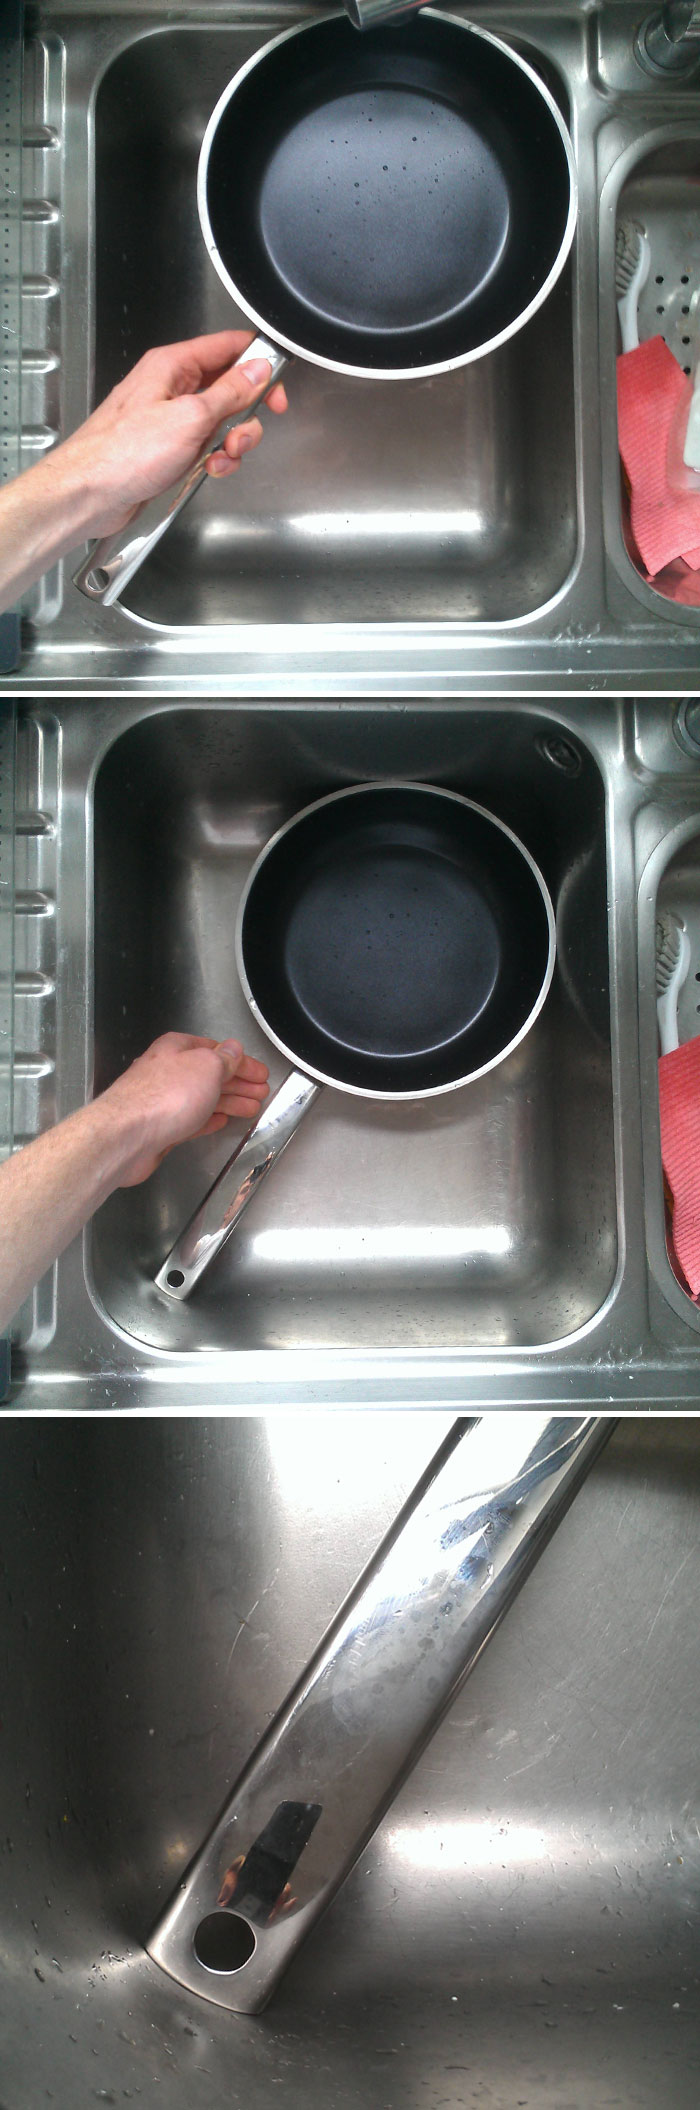 My Frying Pan Fits Perfectly Into My Sink